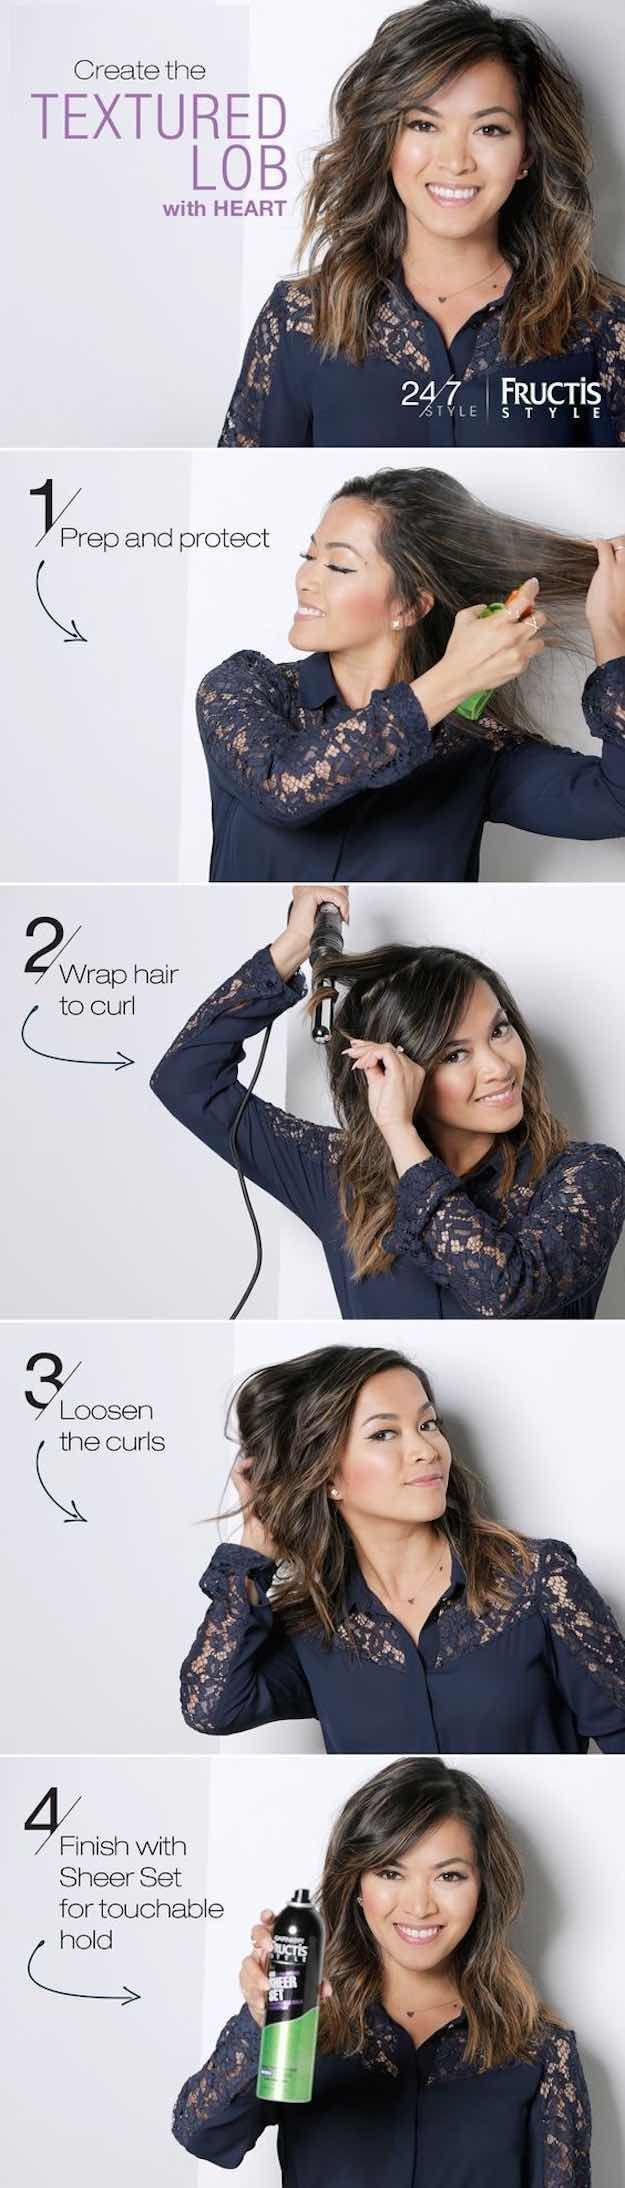 41 Lob Haircut Ideas For Women - TEXTURED LOB HAIRSTYLE TUTORIAL WITH HEART DEFE...